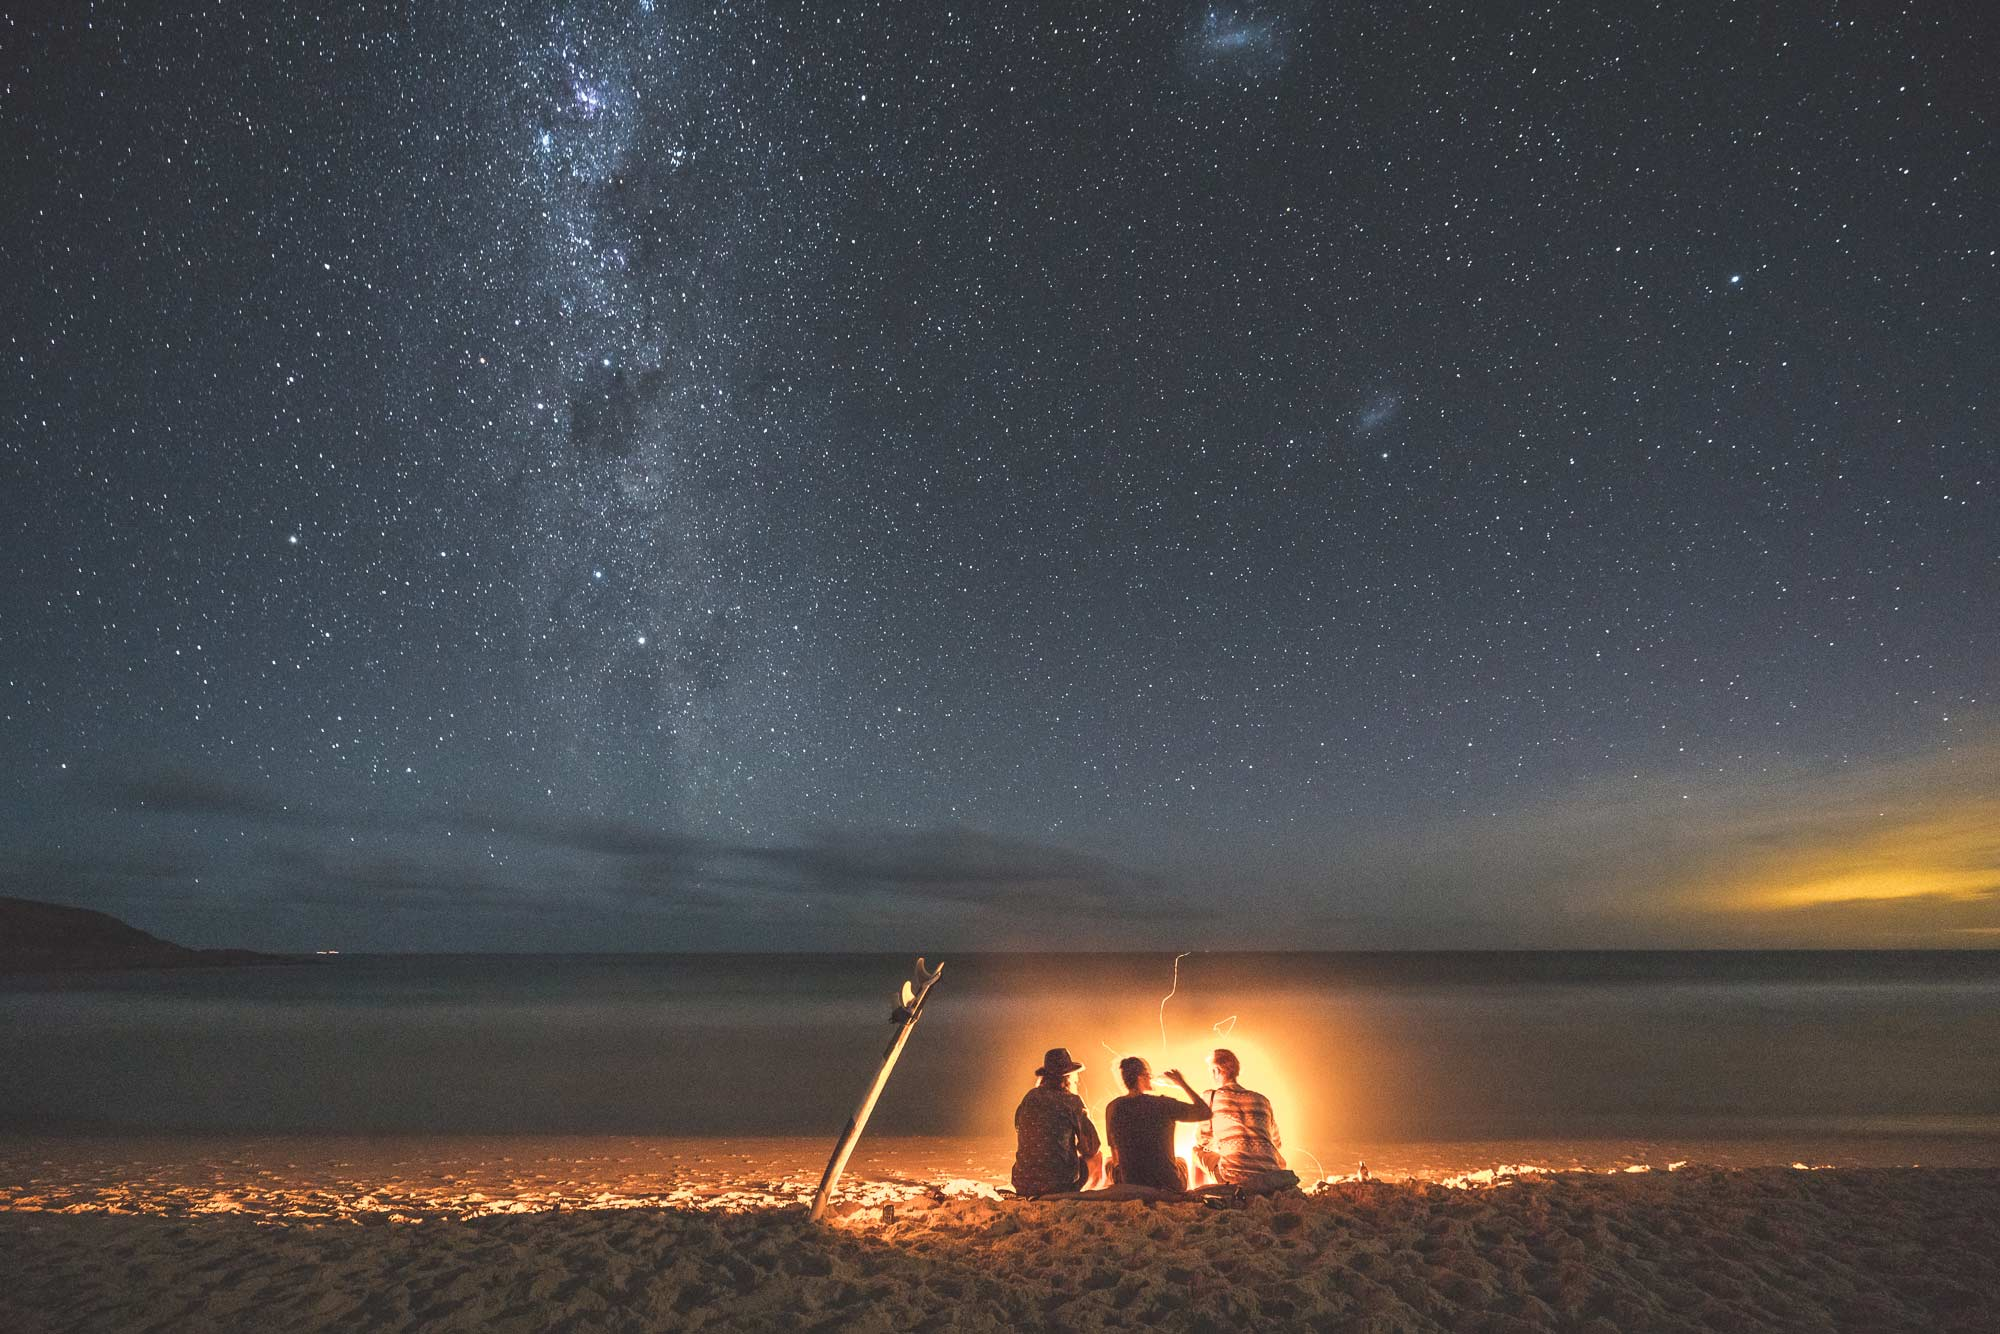 Surfers enjoying drinks under the stars around a campfire in Australia